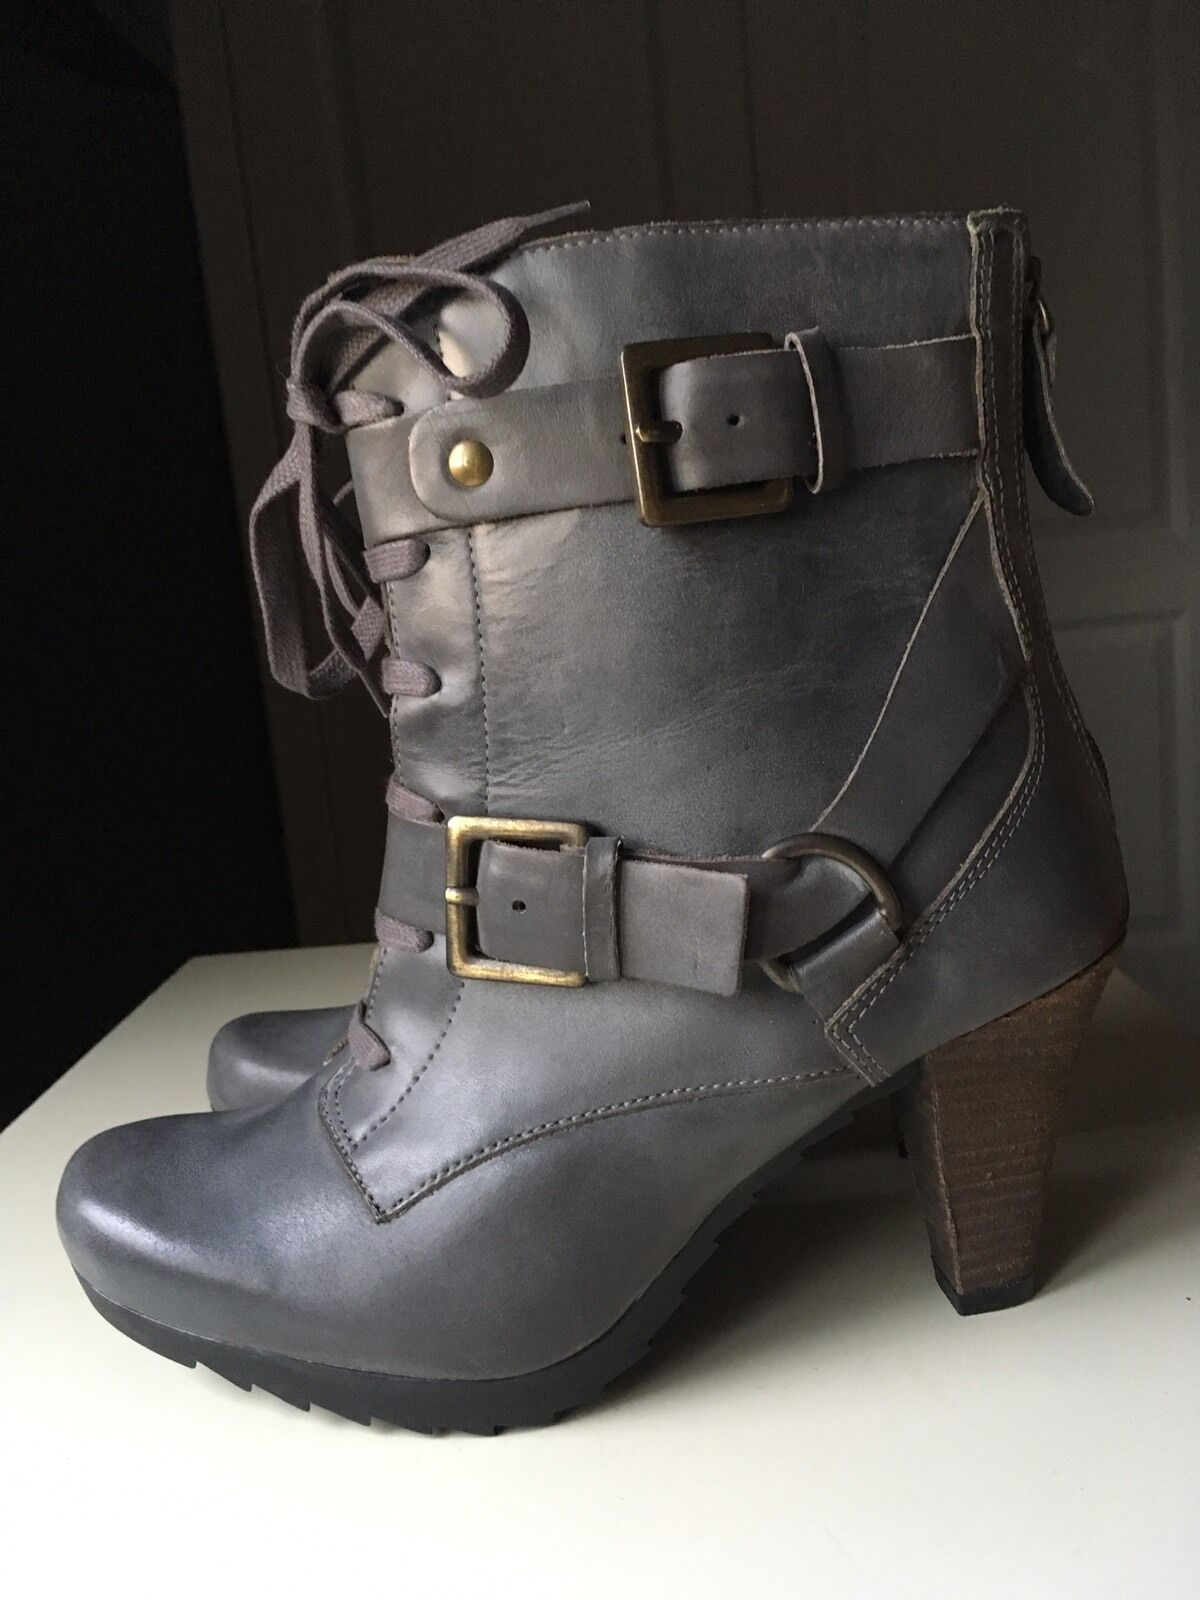 CLARKS Grey Leather Softwear Ankle High Heel shoes Military Boot Size 4.5 37.5 D